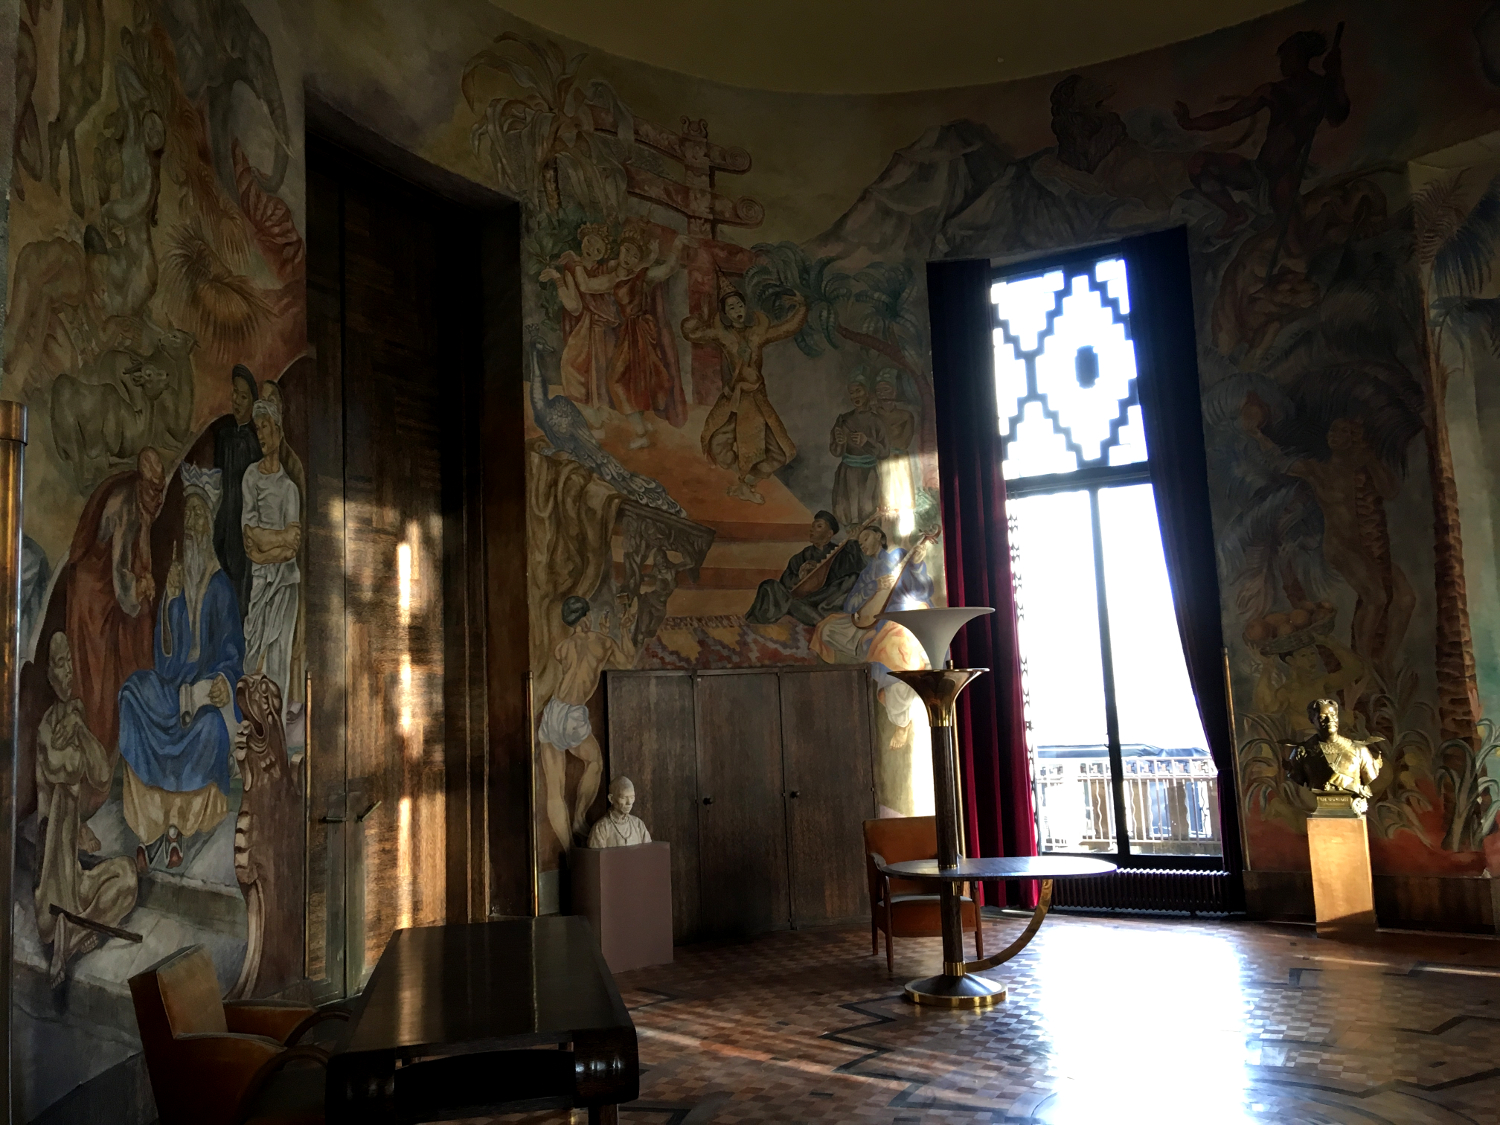 rocaille-blog-paris-palais-de-la-porte-doree-frescoes-30s-8